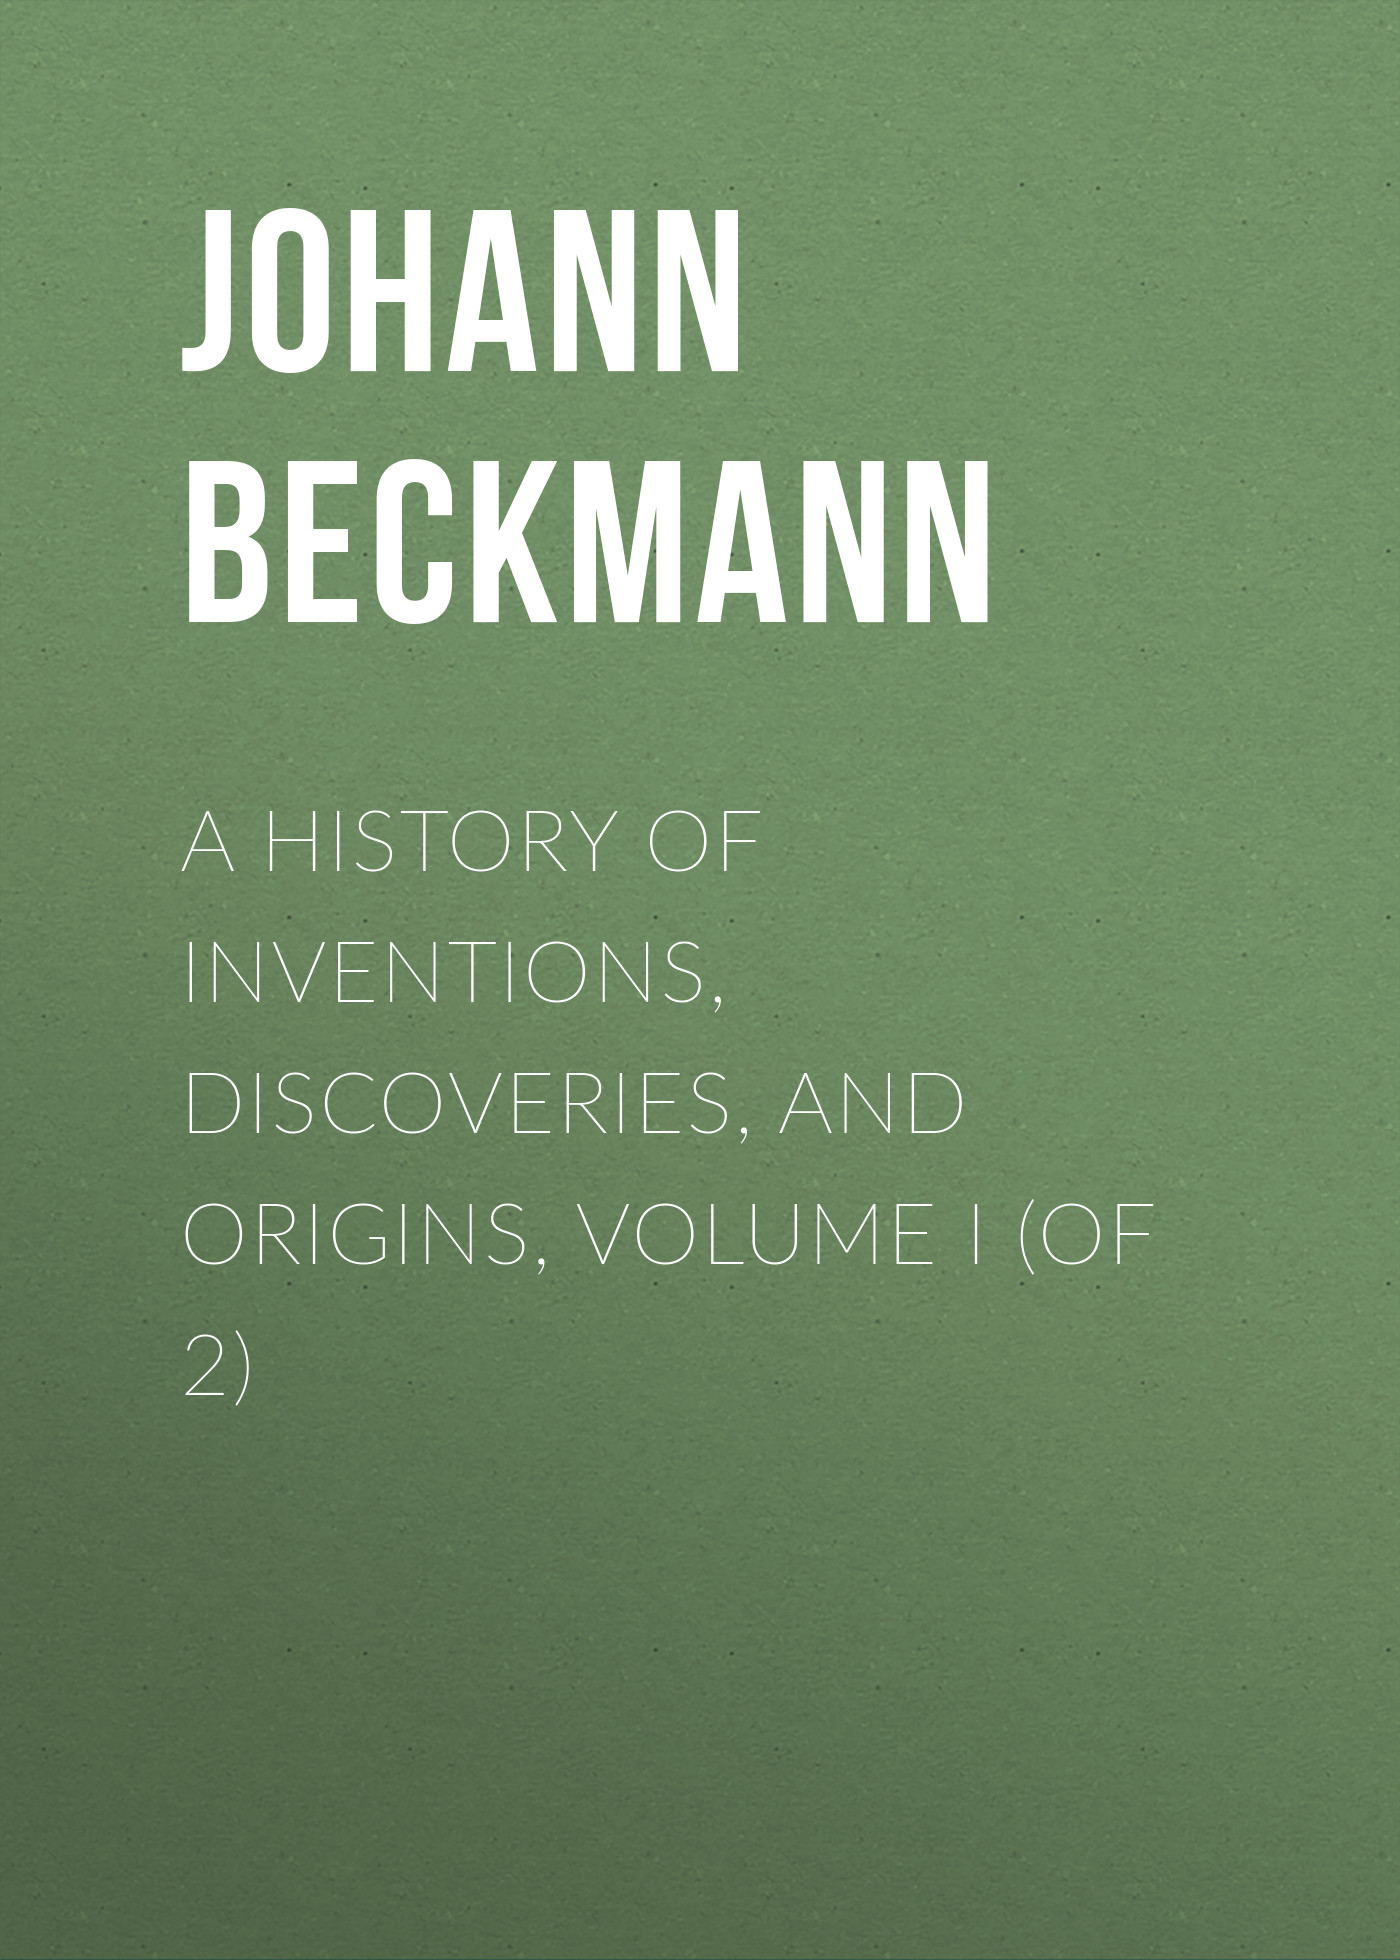 Johann Beckmann A History of Inventions, Discoveries, and Origins, Volume I (of 2) hyatt regency origins origins 30ml